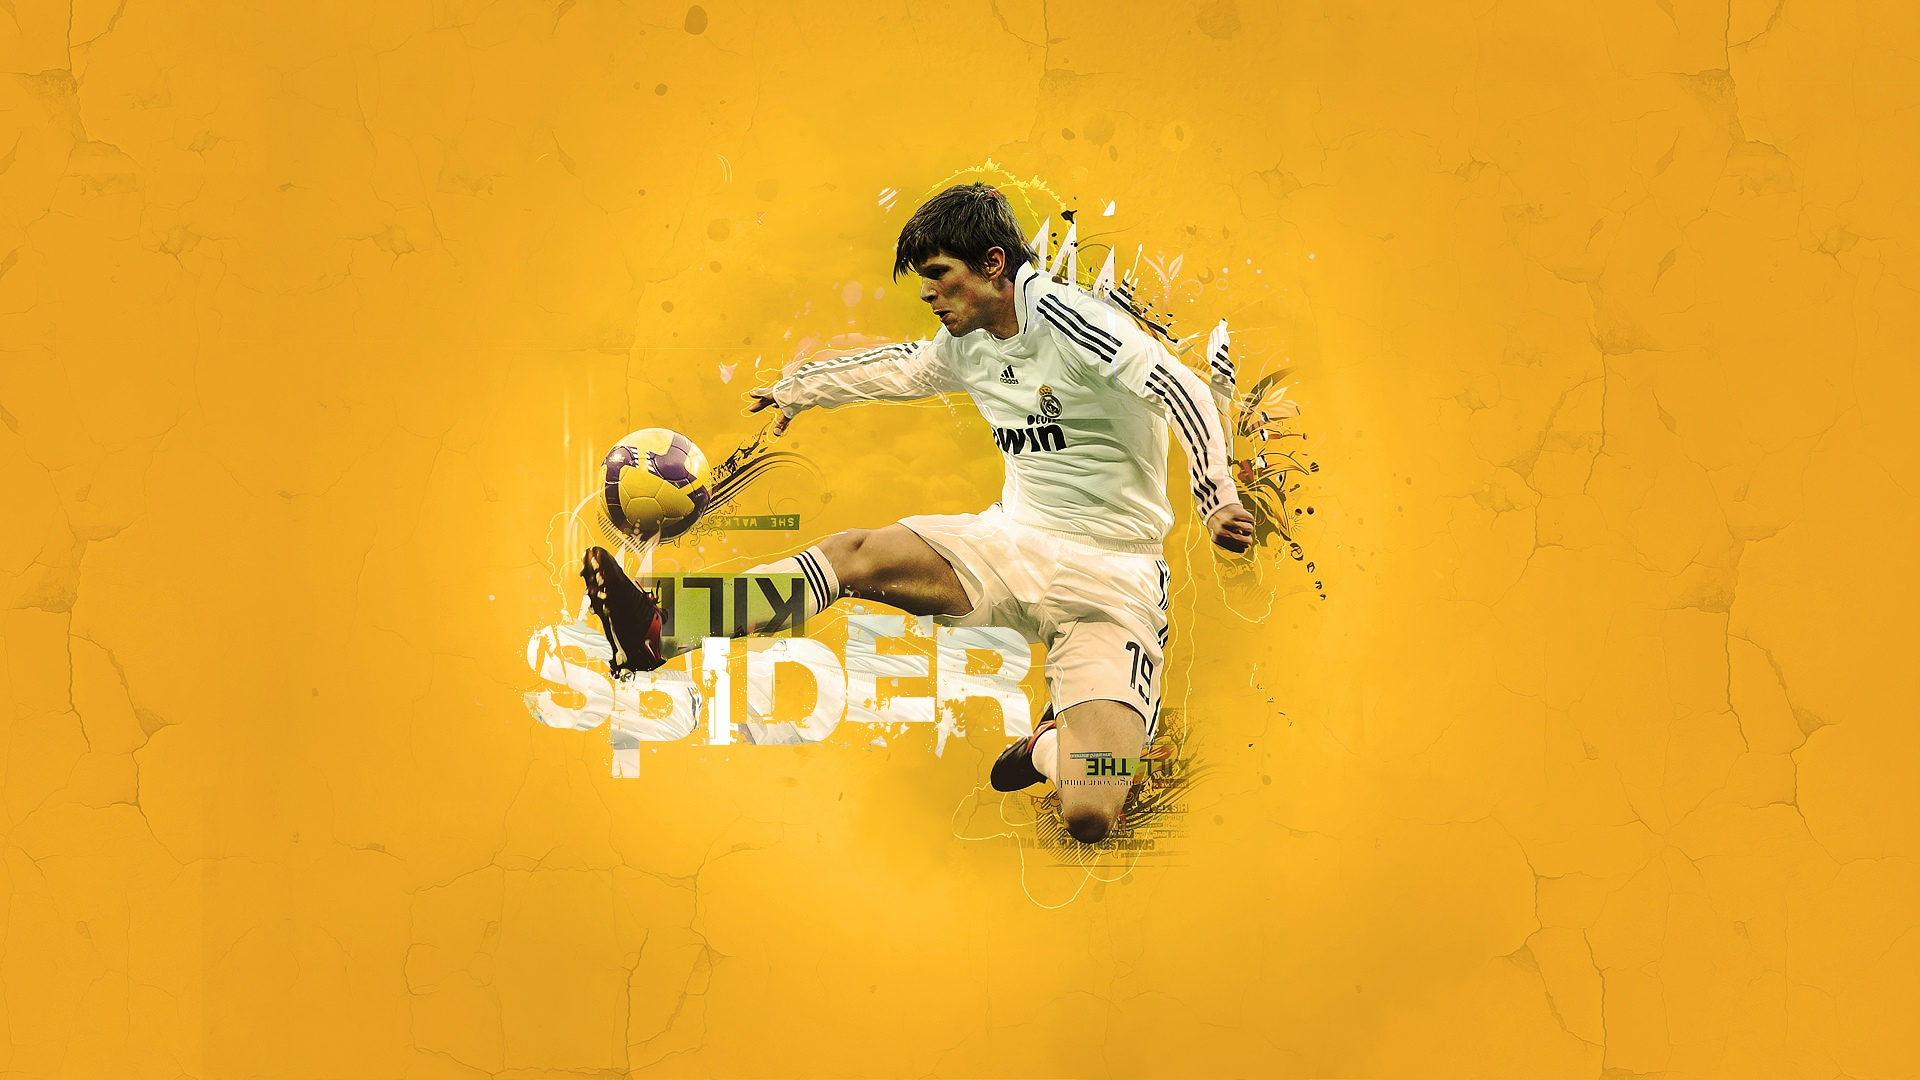 nike soccer wallpaper